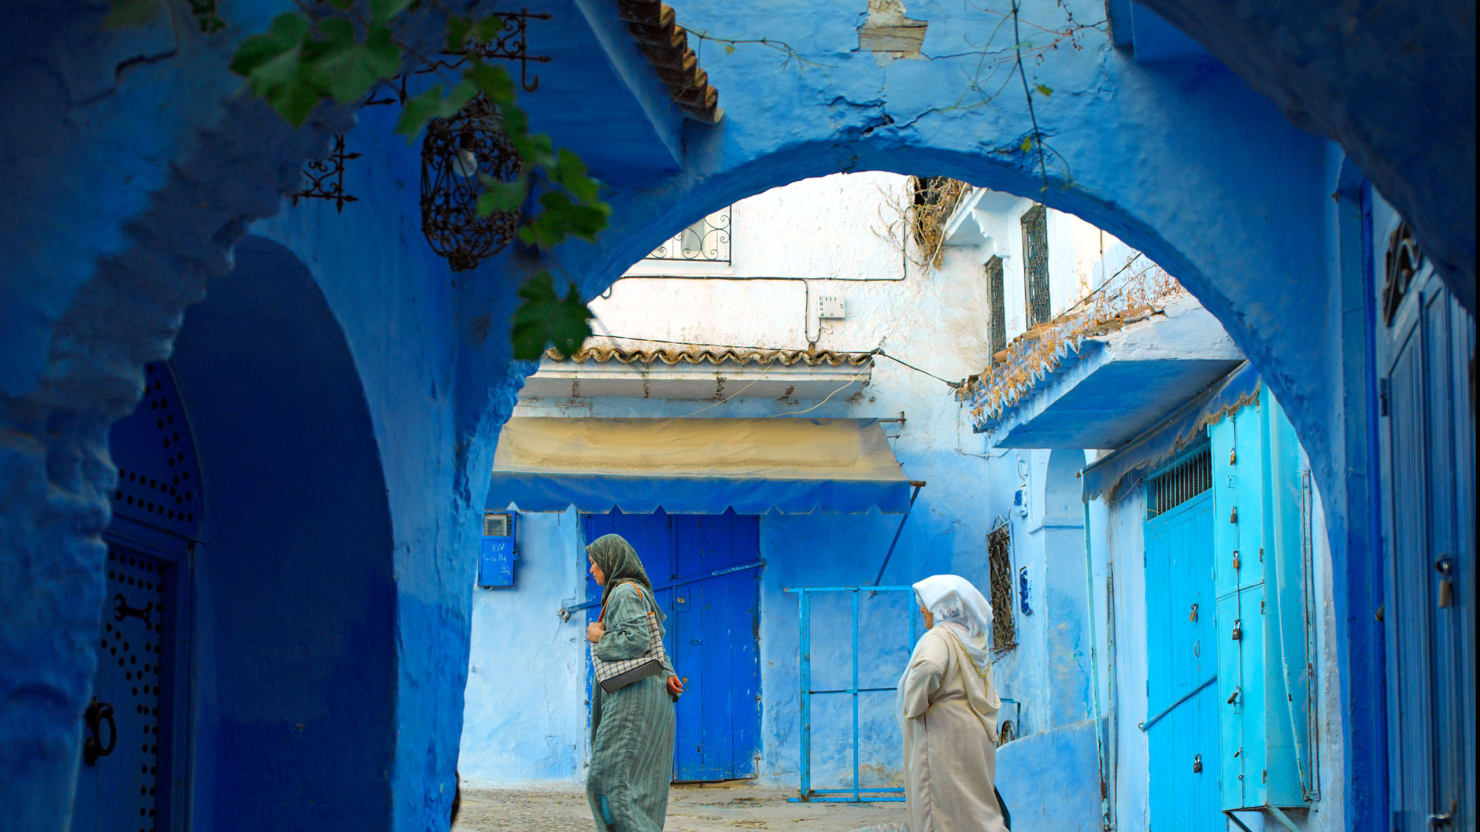 A City High In The Mountains Of Morocco Remained Shut Off From World For Almost 500 Years Now Its Labyrinthine Streets Decked Shades Blue Are